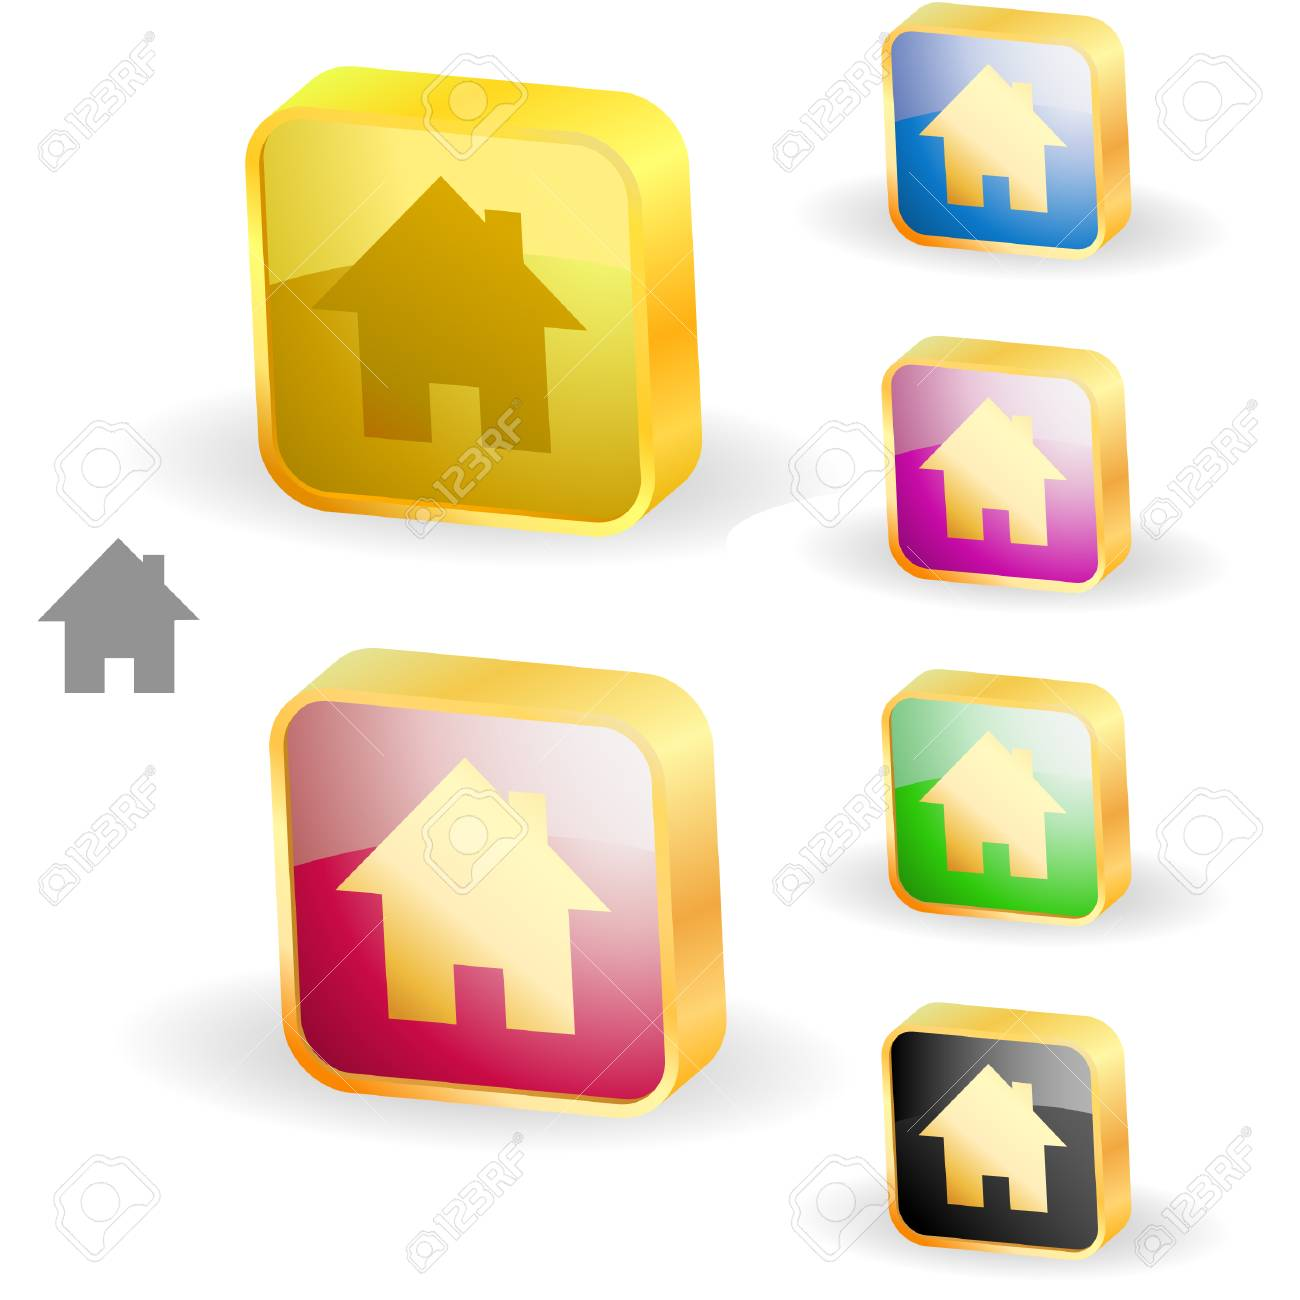 Home icons. Graphic elements set. Stock Vector - 6331566